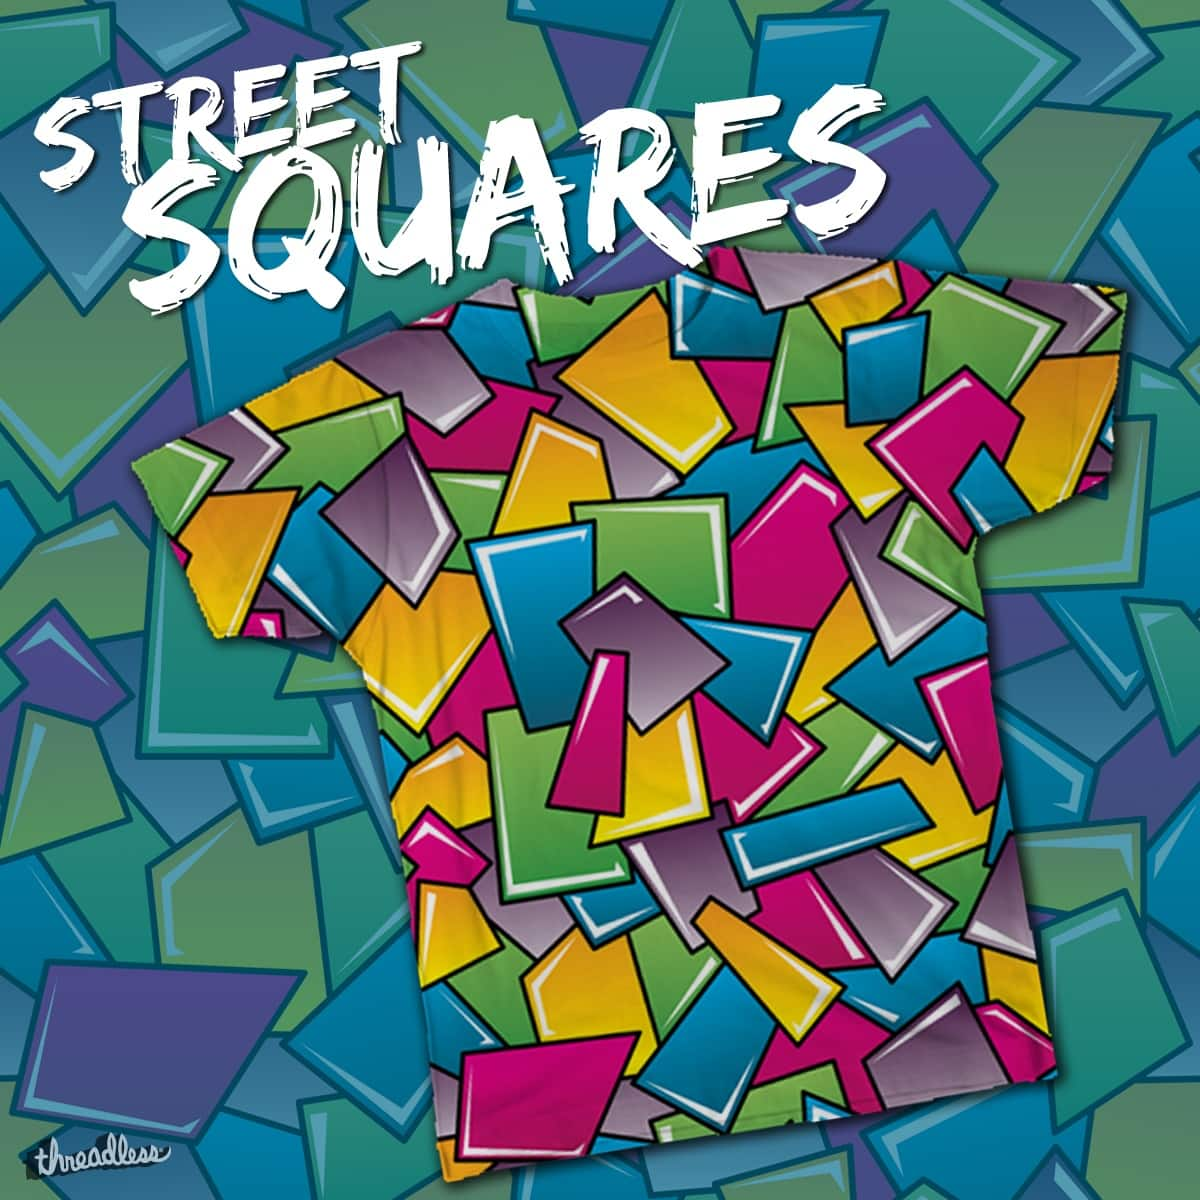 Street Squares by robyriker on Threadless